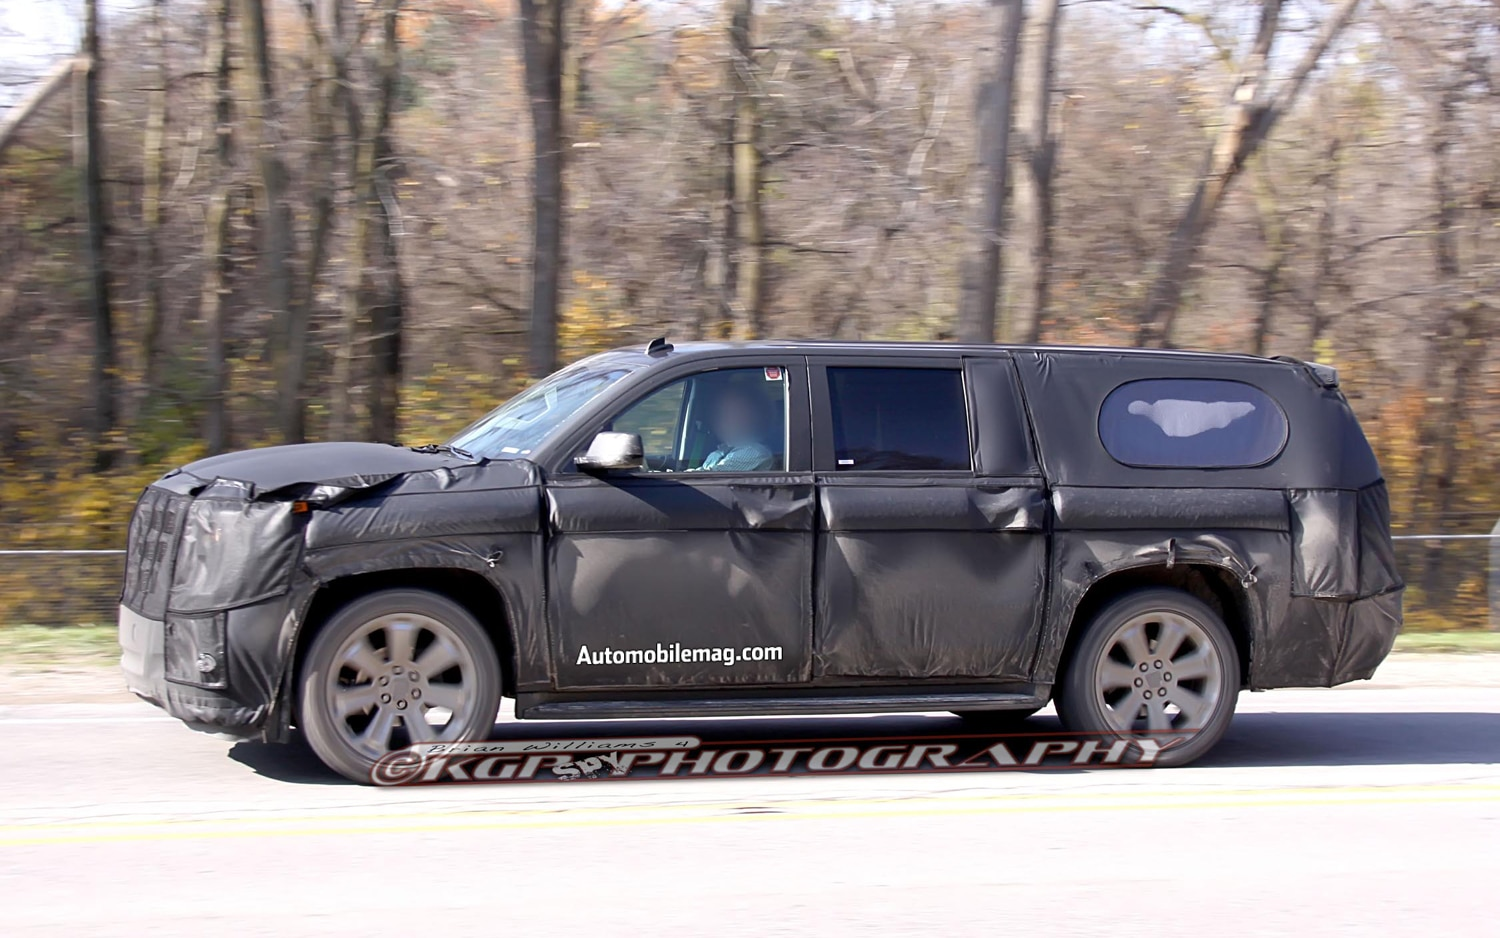 Caught 2014 Cadillac Escalade Continues Testing